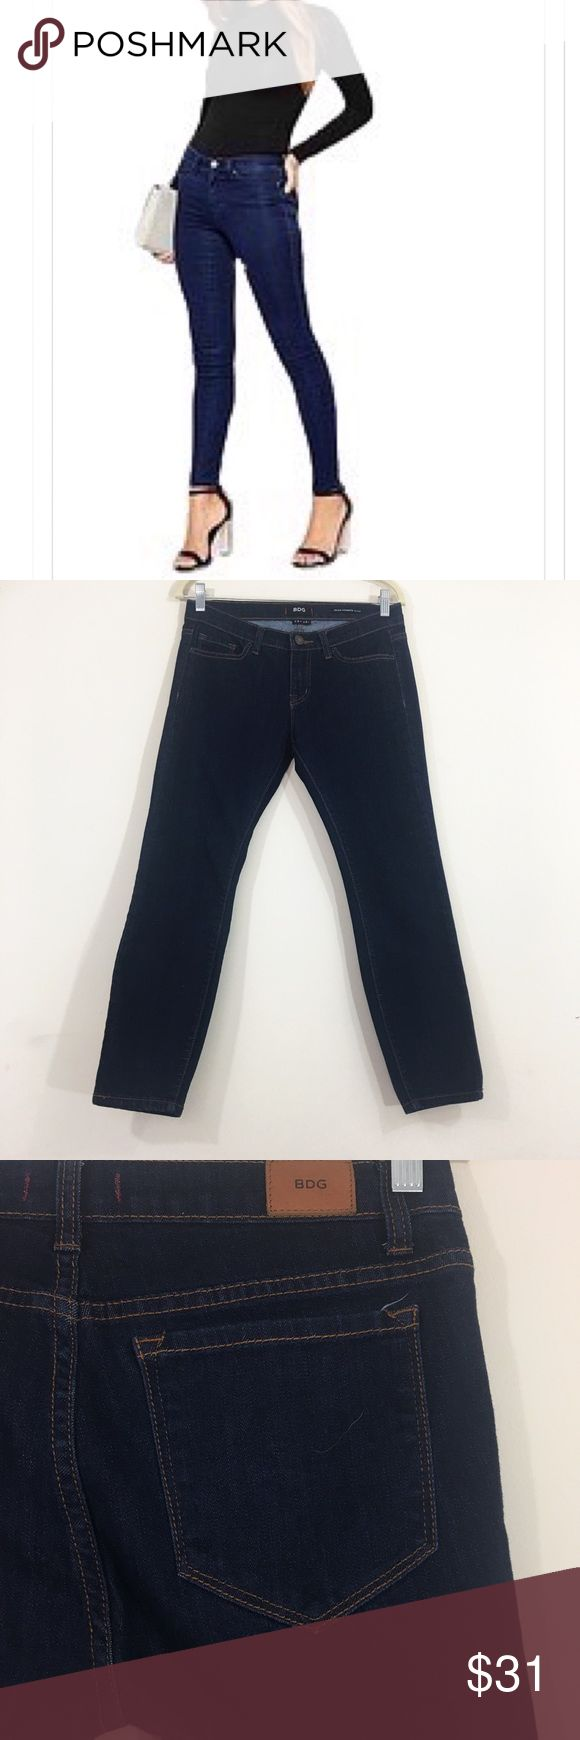 BDG Mid Rise Cigarette Jeans Inseam: 26 inches. These jeans are in excellent used condition. No stains or defects. They are mid rise cigarette grazer jeans. BDG Jeans Ankle & Cropped